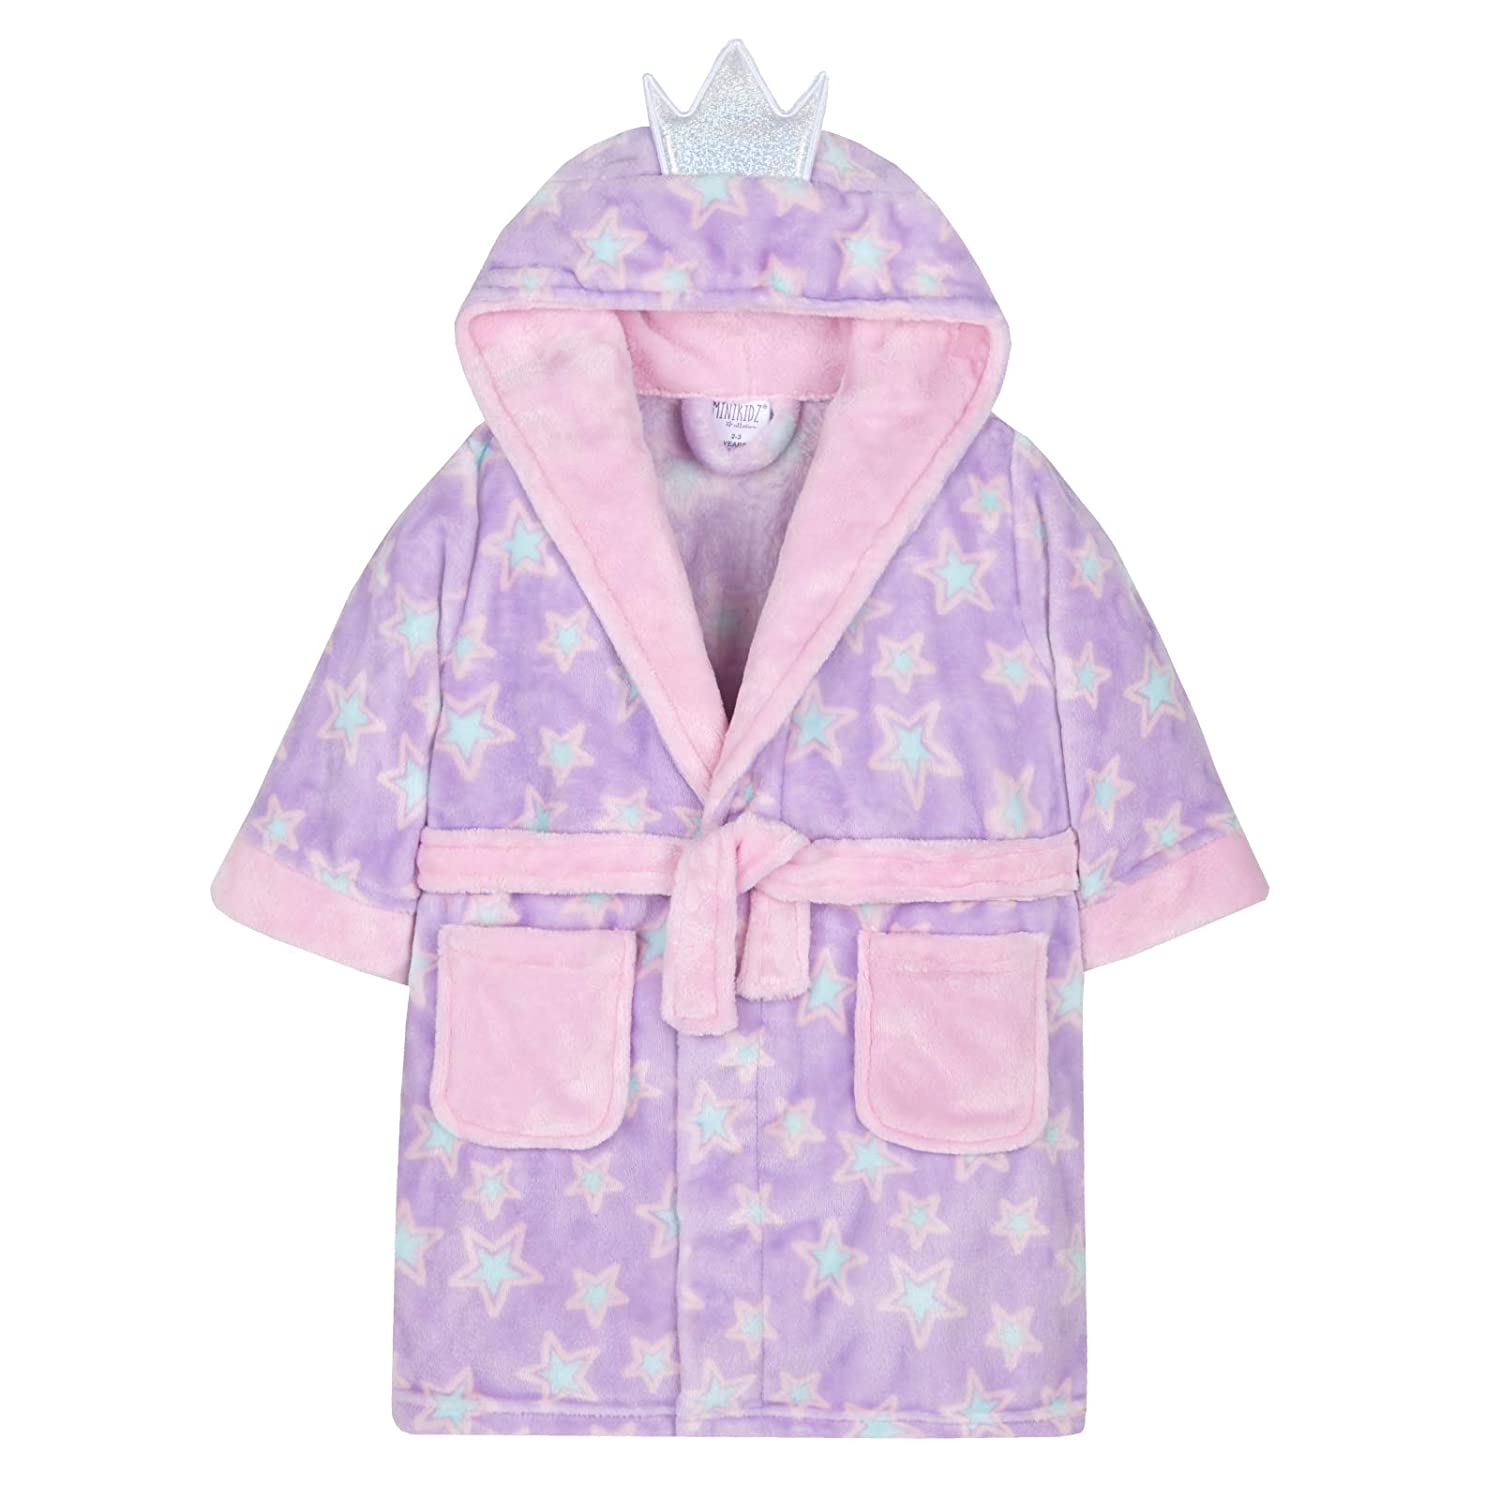 6368ec70d2 Lora Dora Girls Novelty 3D Dressing Gown Shoe Directory LB0998